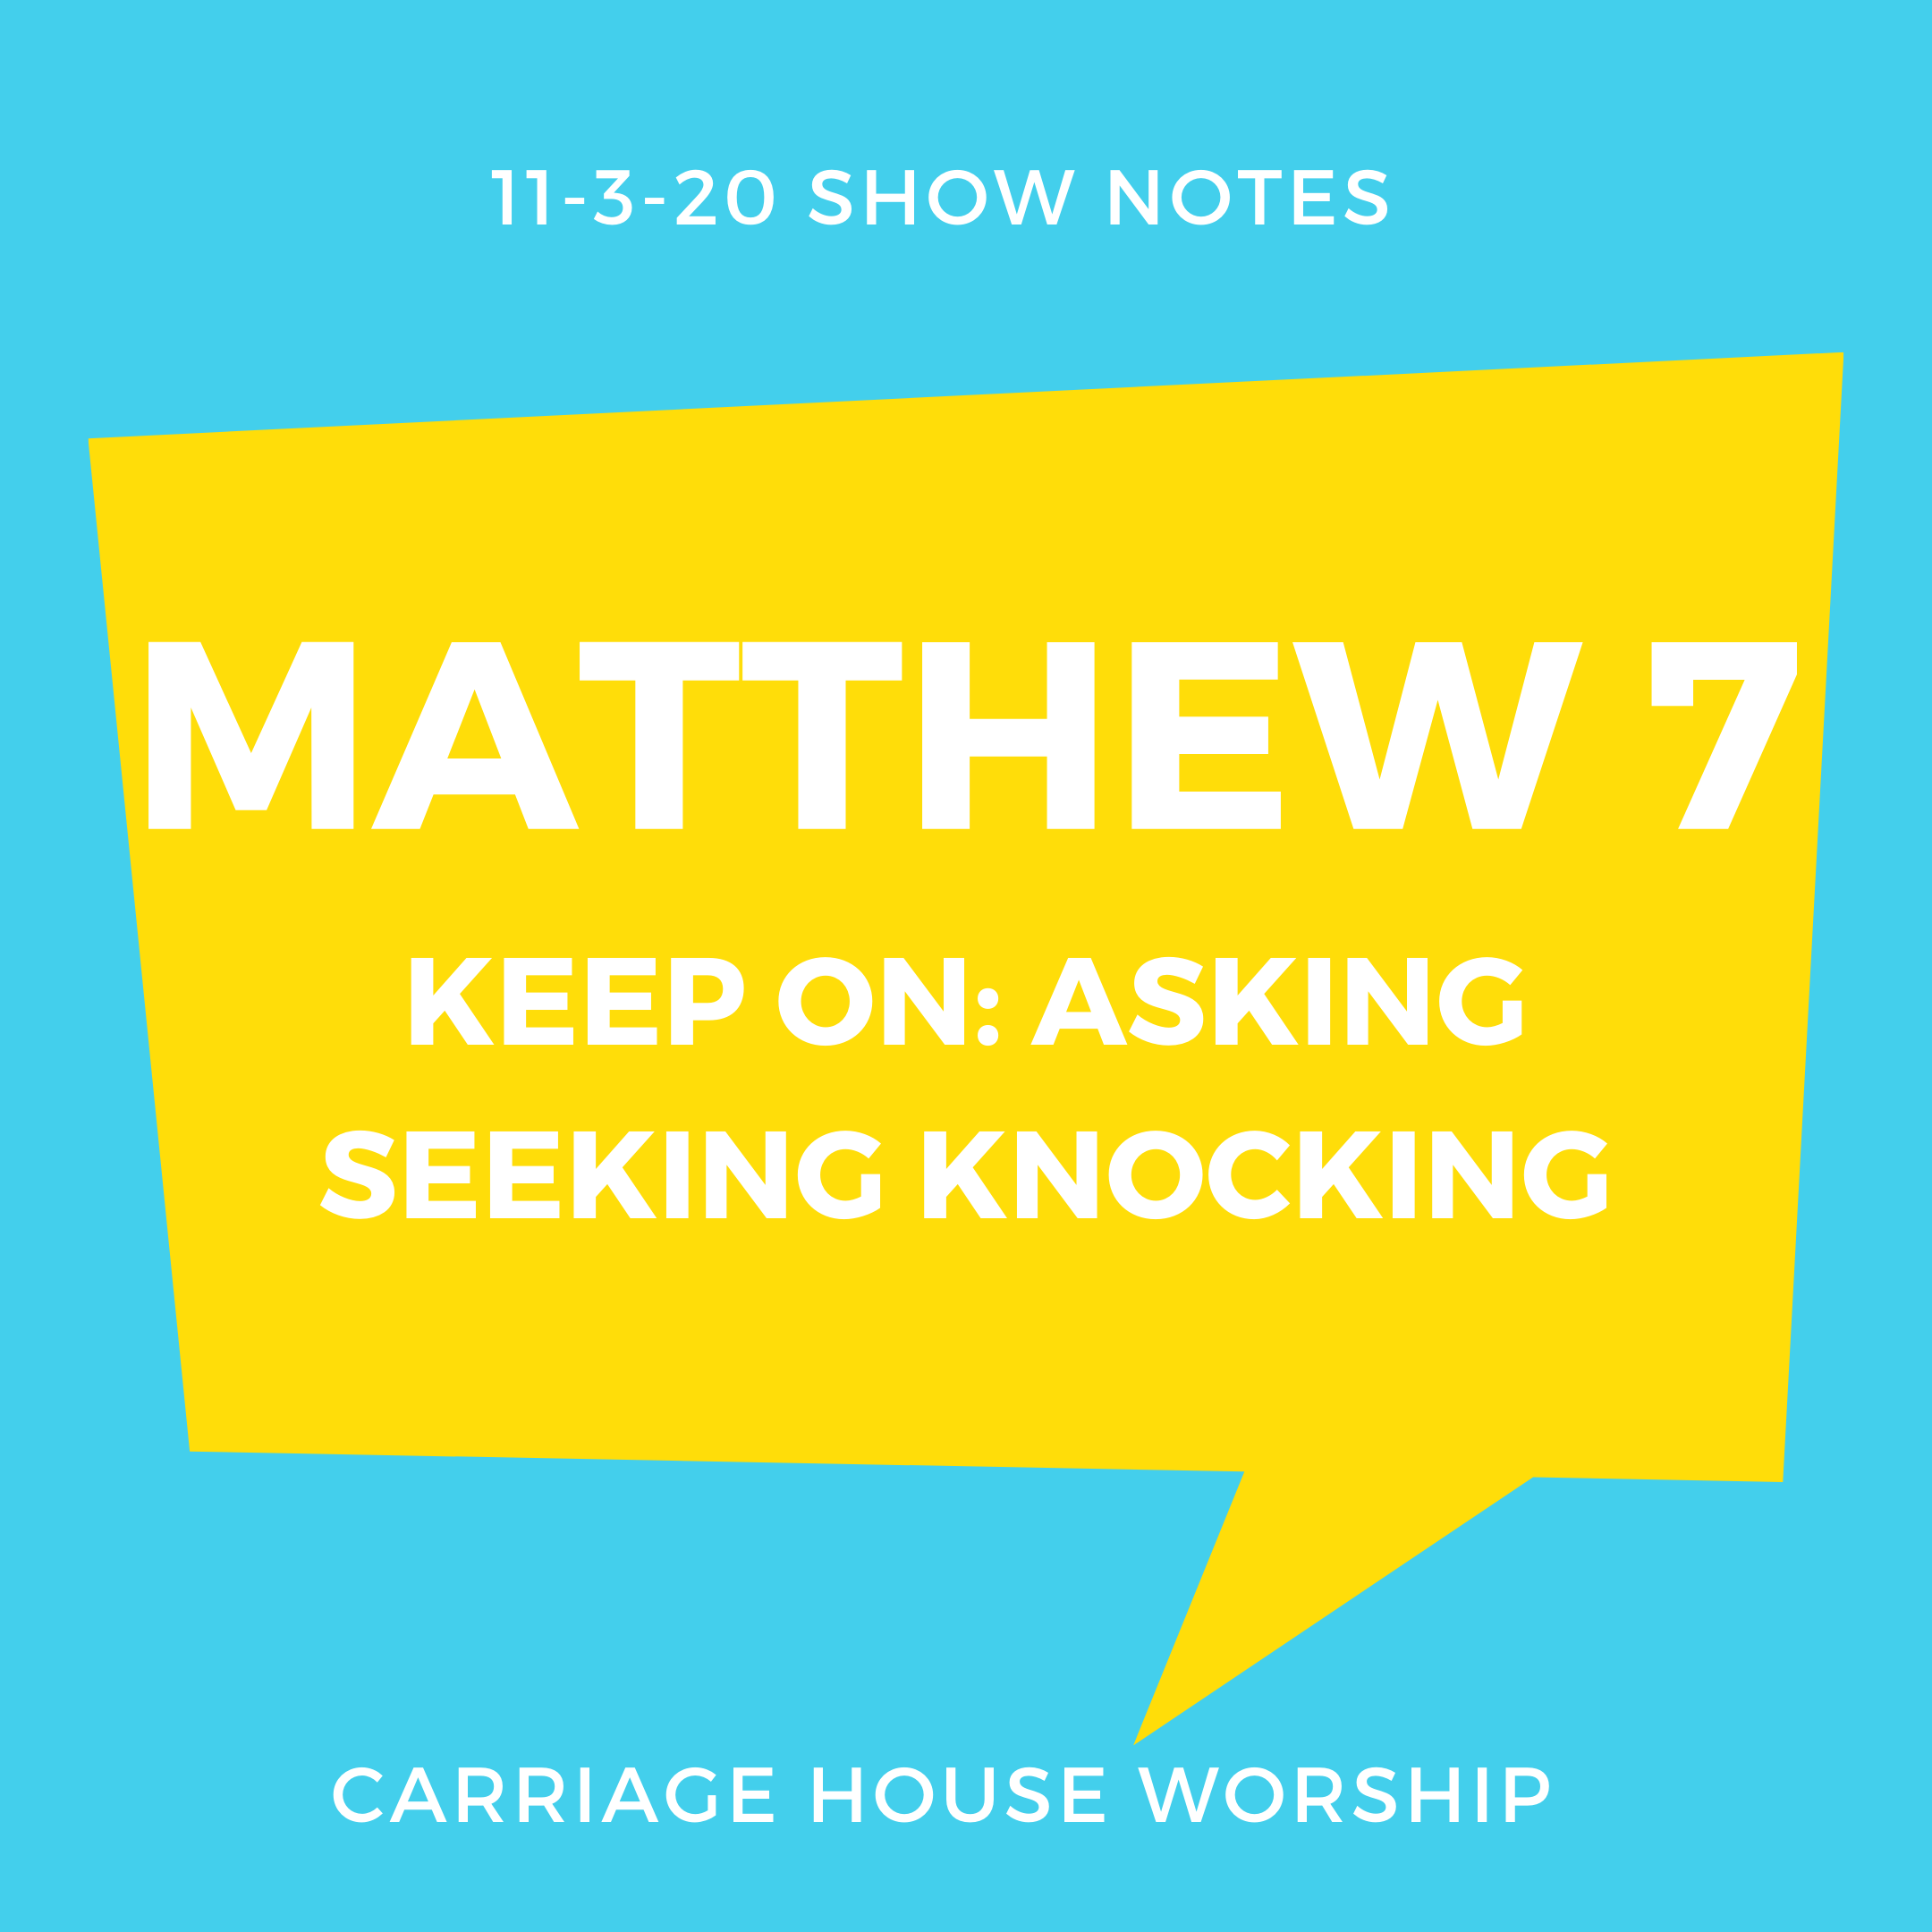 Show Notes - 11-3-20 Matthew 7 Keep On Asking Seeking Knocking